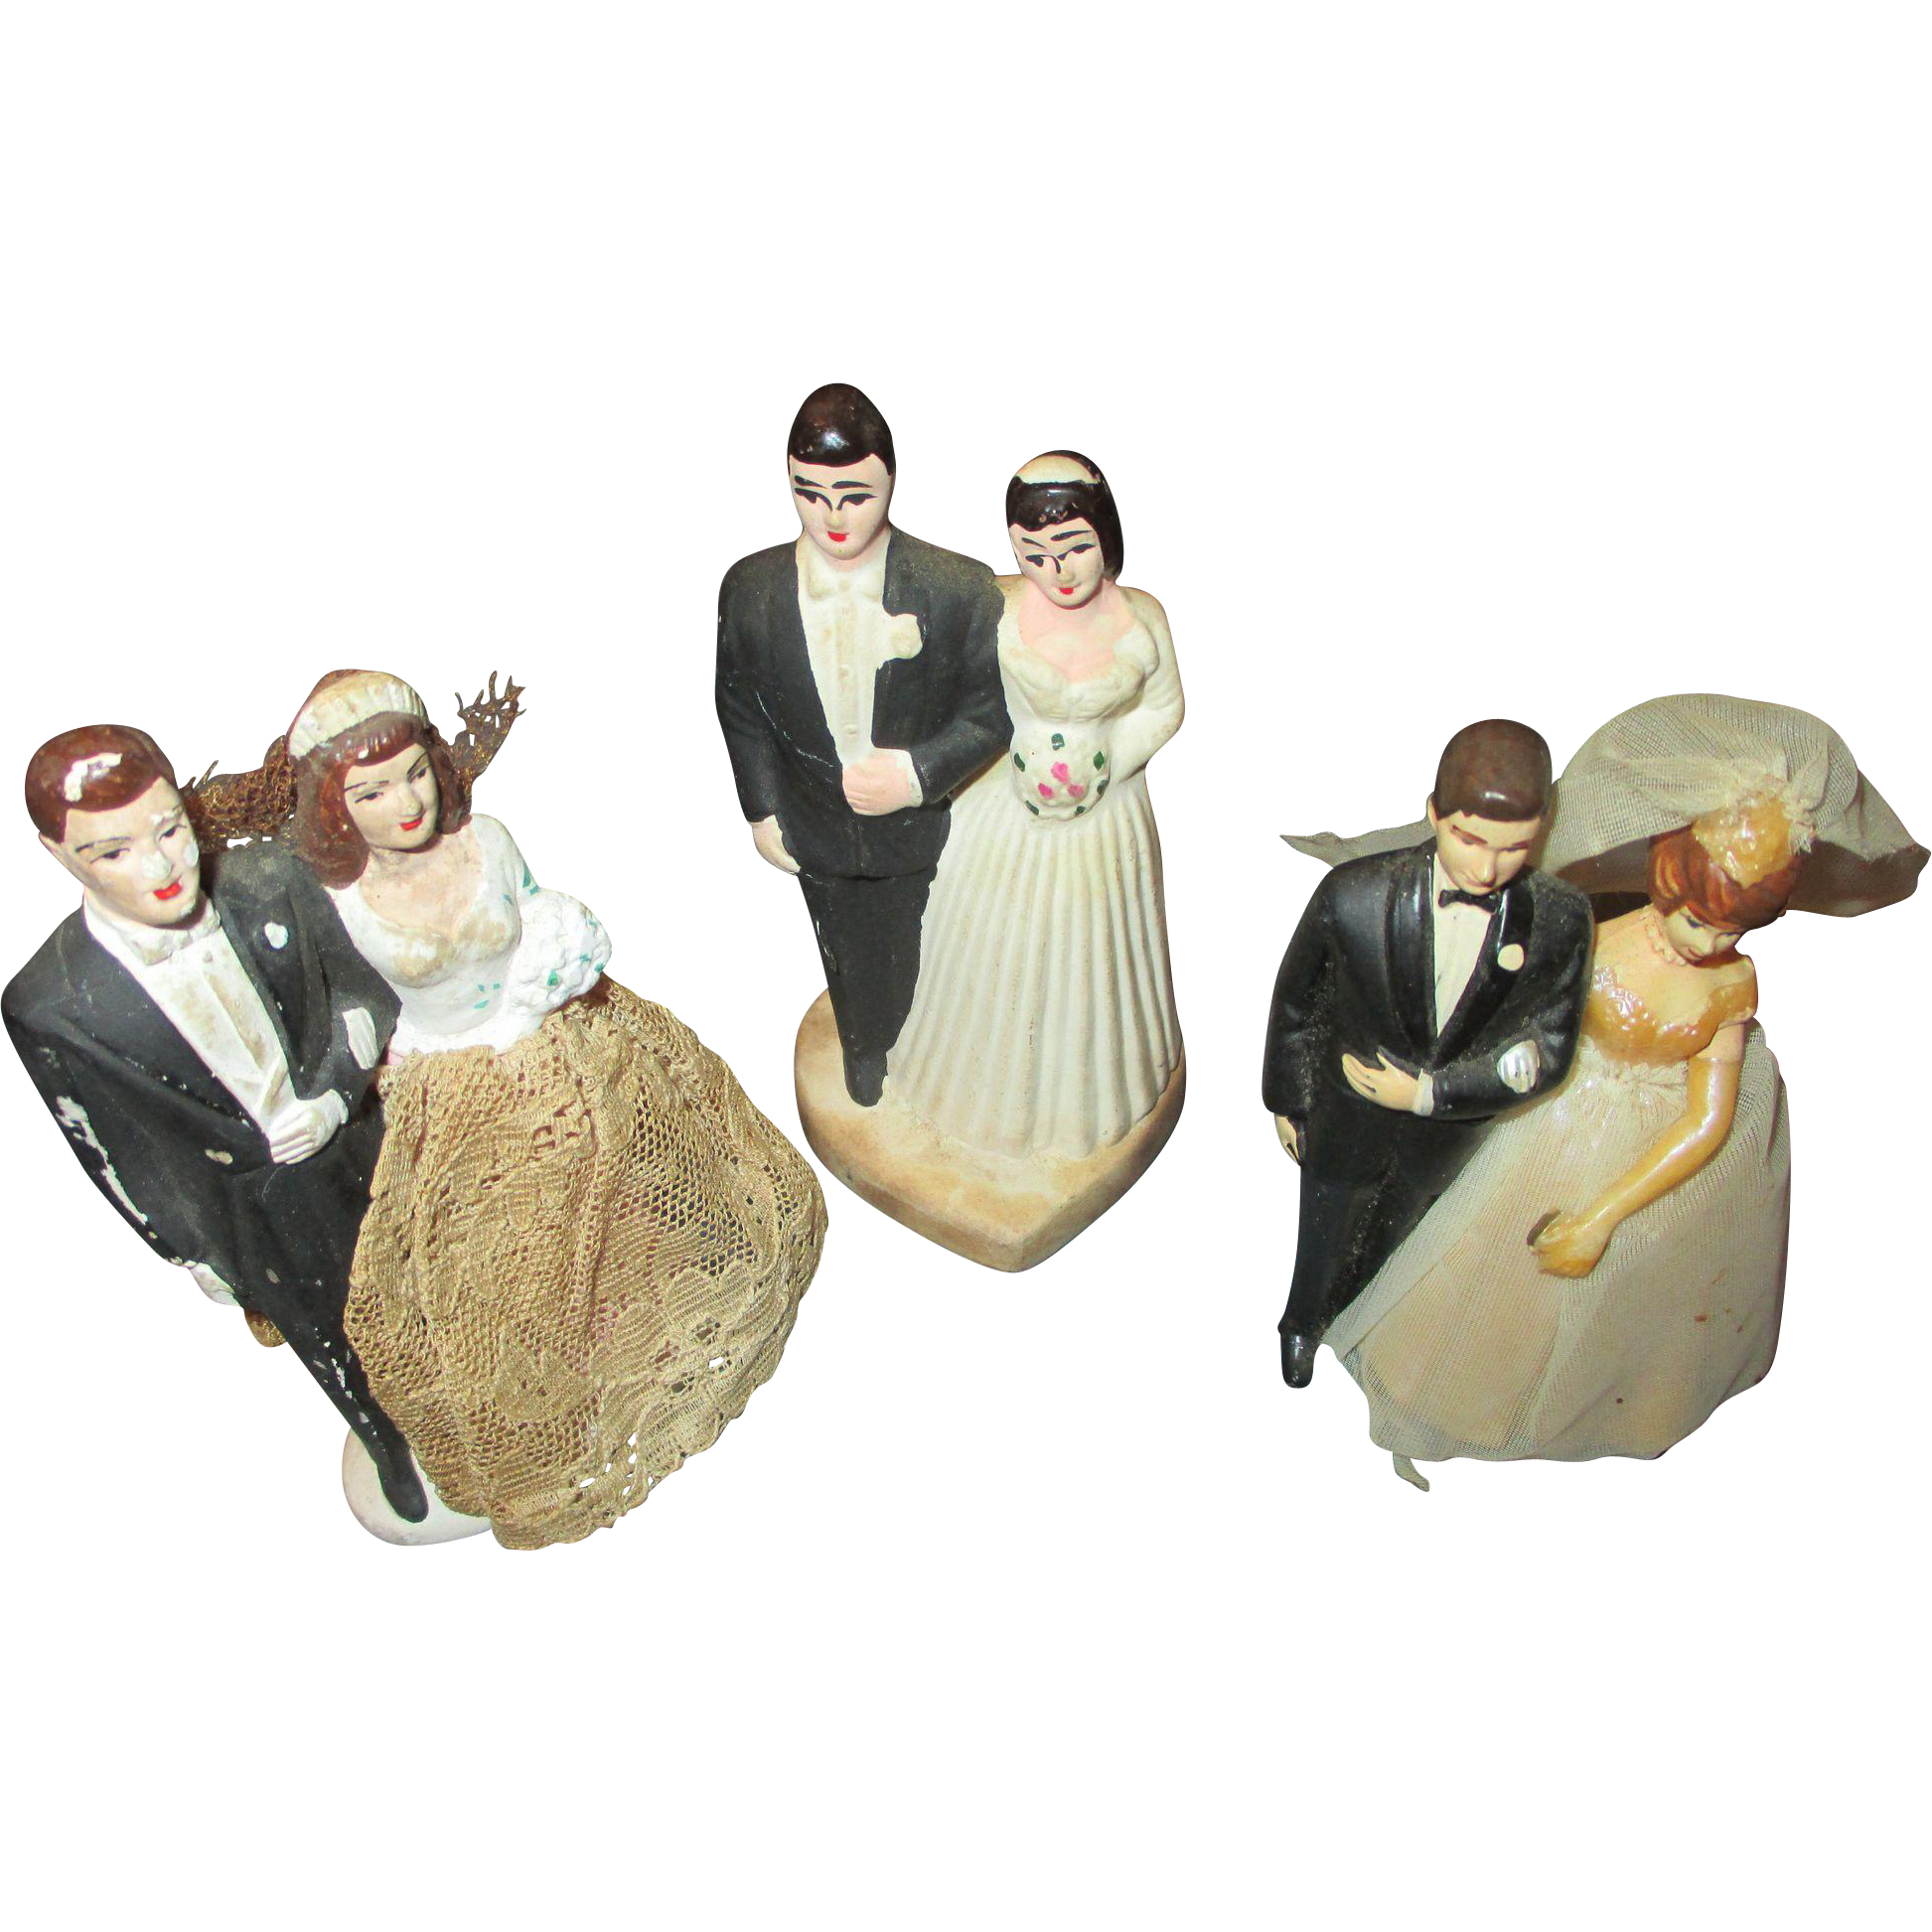 Wedding Cake Toppers Vintage: Group Of 3 Vintage Wedding Cake Toppers From